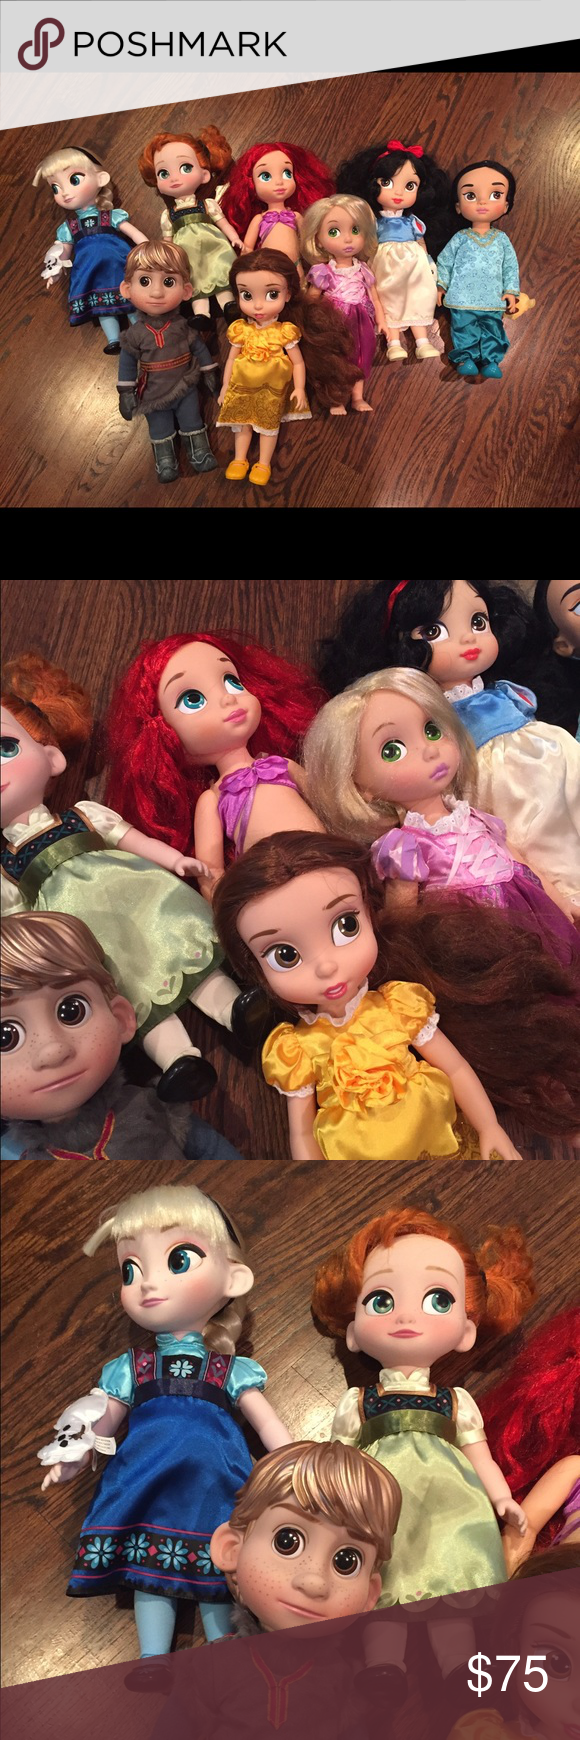 8 Disney Store Animator dolls 8 Disney Store Animator dolls. Great shape. We're used as decor in my daughters room. Some of the hair could use some brushing due to being in a box from a move. You can use a doll brush and a light spray of water to smooth. Ariel doesn't have her tail and Snow White has a pencil mark on her dress. These retail for $25 each new at the store. Awesome deal! Comes from very clean and smoke free home. This will be heavy to ship. Disney Other